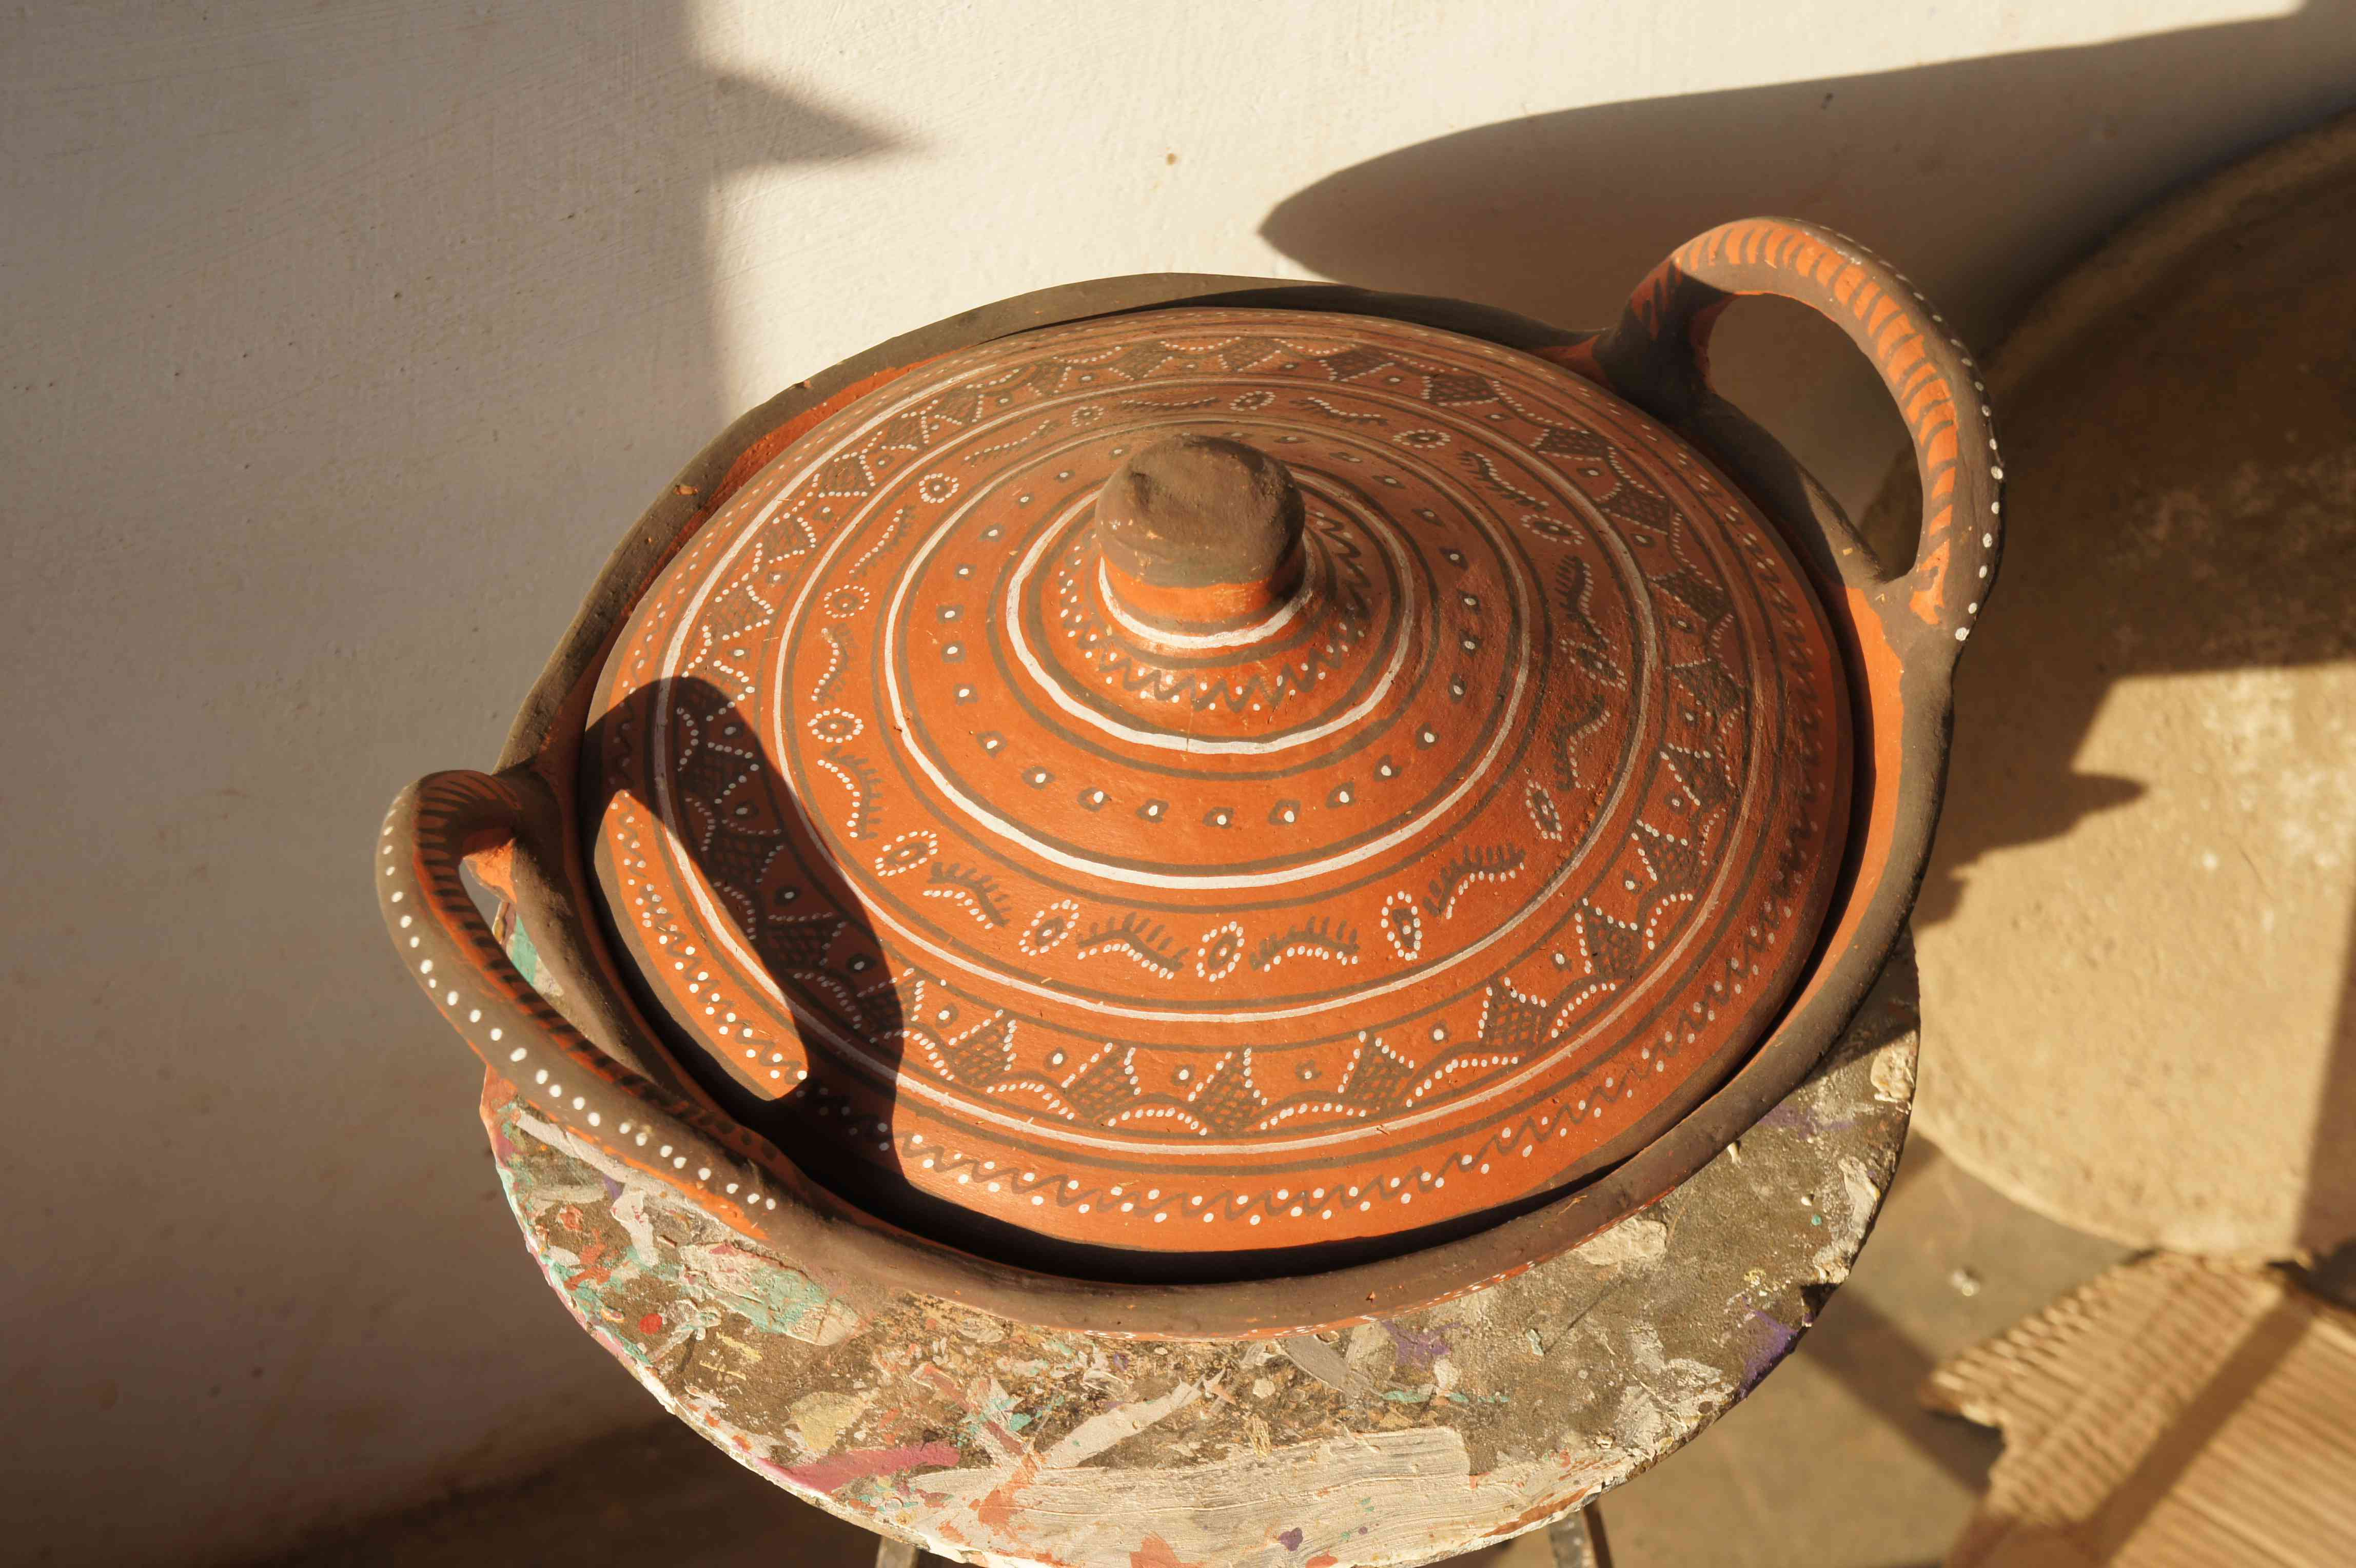 a terracotta dish and lid on a stool. The dish is decorated with blakck and white paint